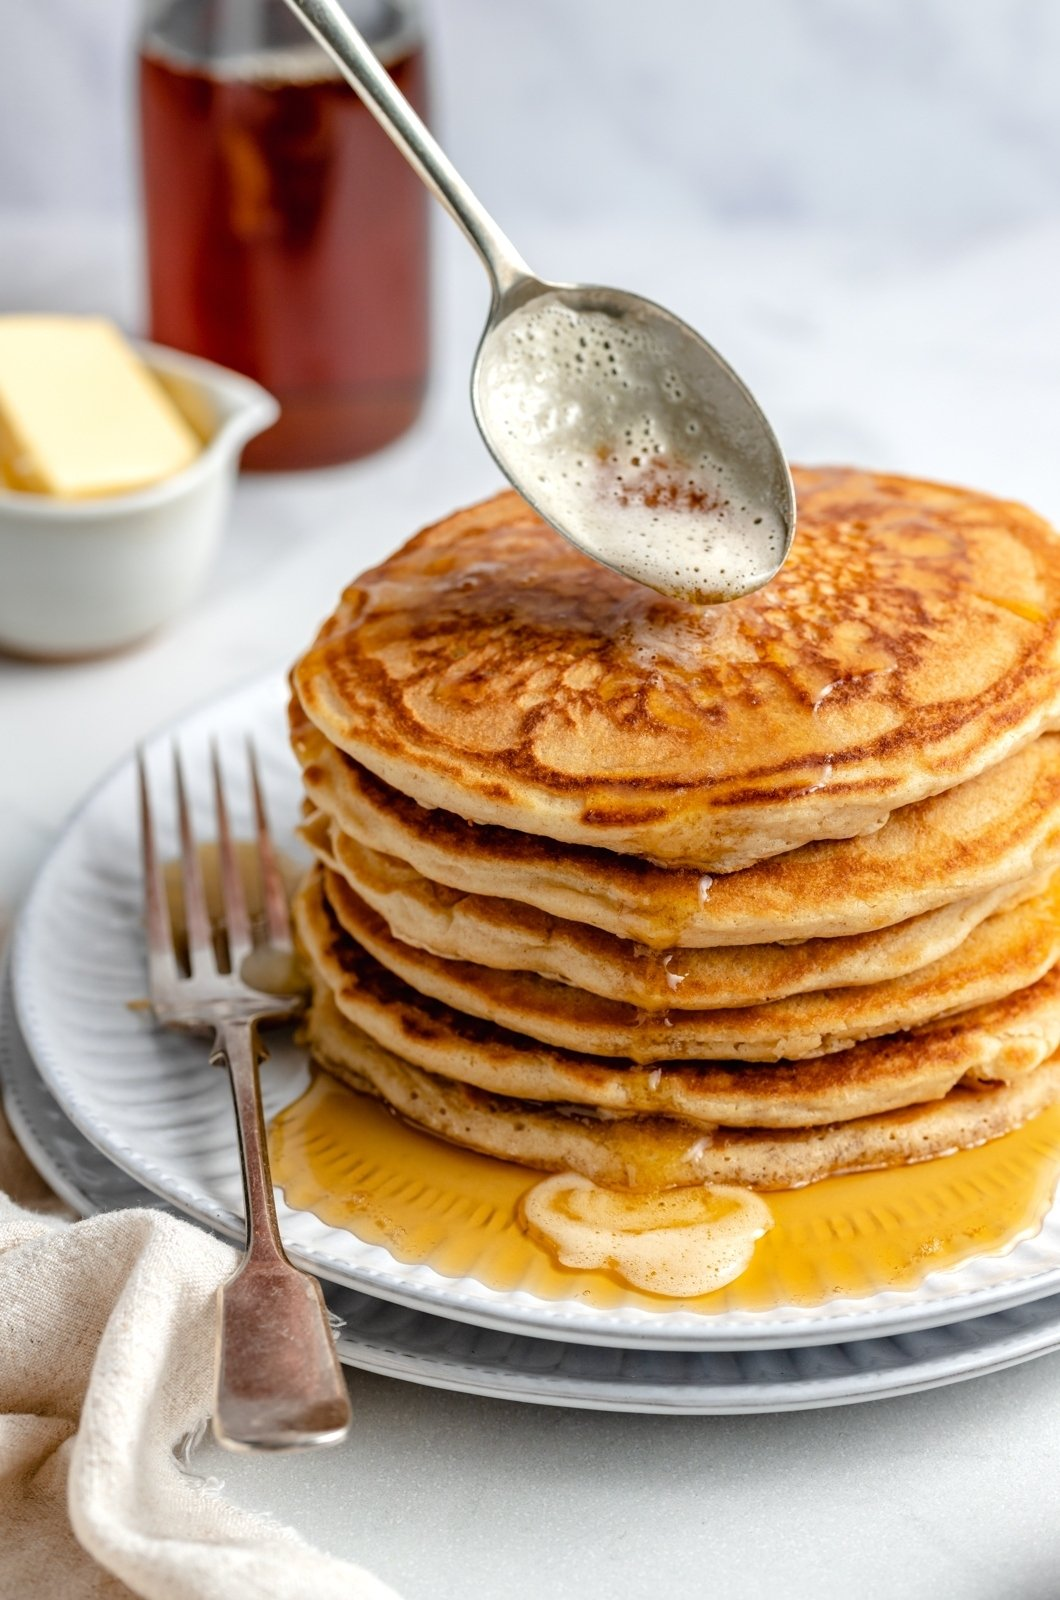 spooning brown butter onto a stack of brown butter pancakes